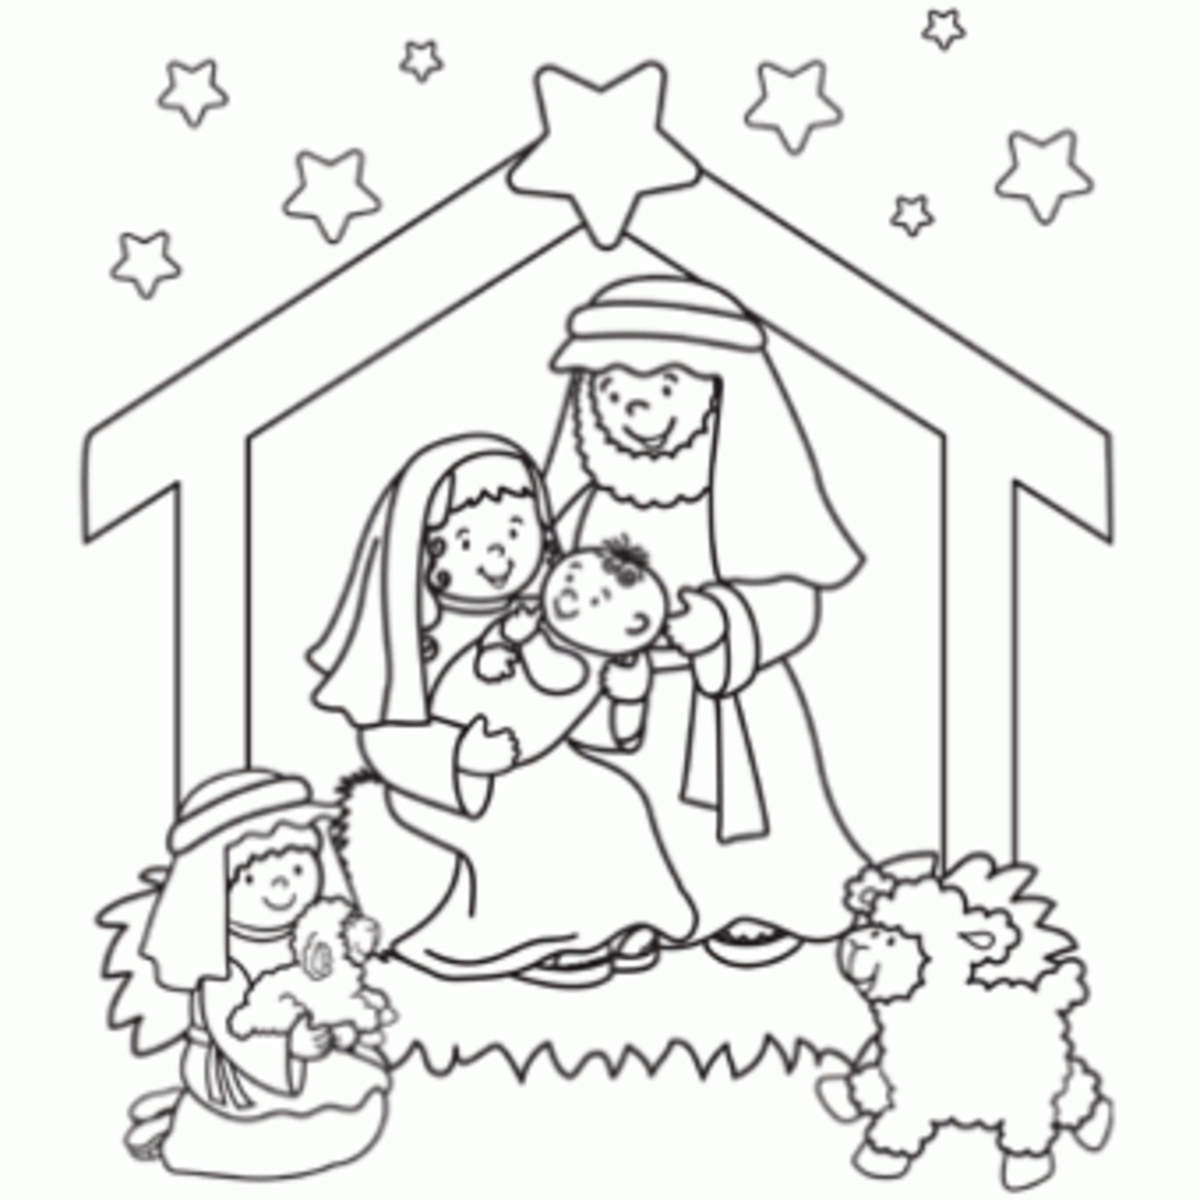 Coloring Pages For Christmas Nativity : Online Christmas Nativity Printables hubpages